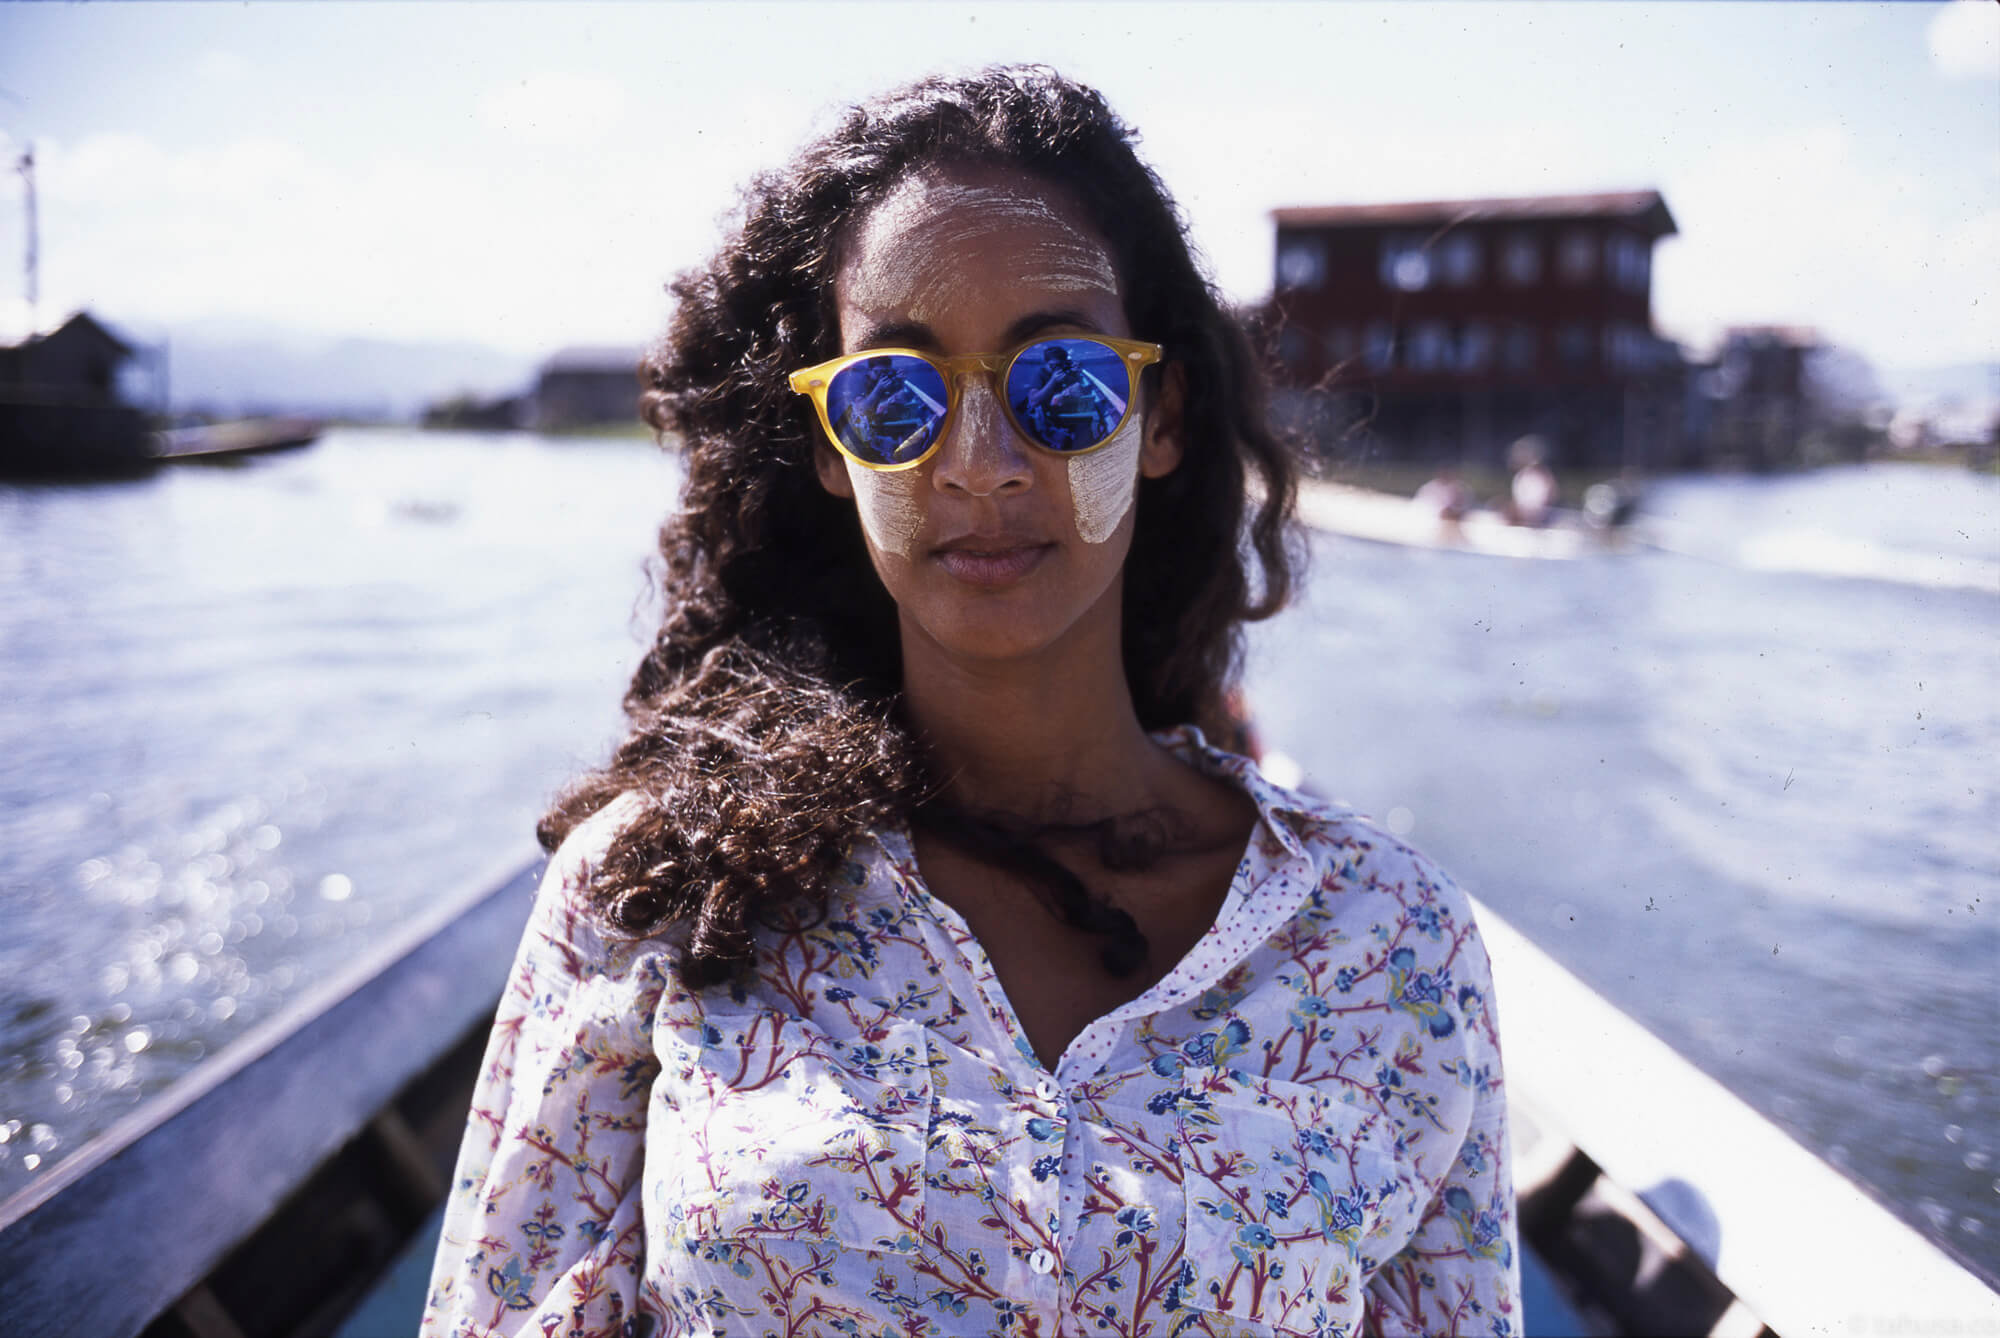 ophelia-portrait-reflection-from-sunglasses-in-inle-lake-myanmar-shan-state-boat-trip-south-east-asia-Asian-fuji-fujifilm-provia-100f-RDPIII-RDP-slide-135-positive-summicron-35mm-f2-v1-8elements-8ele-leica-m2-backpacking-burma-hostel-friends